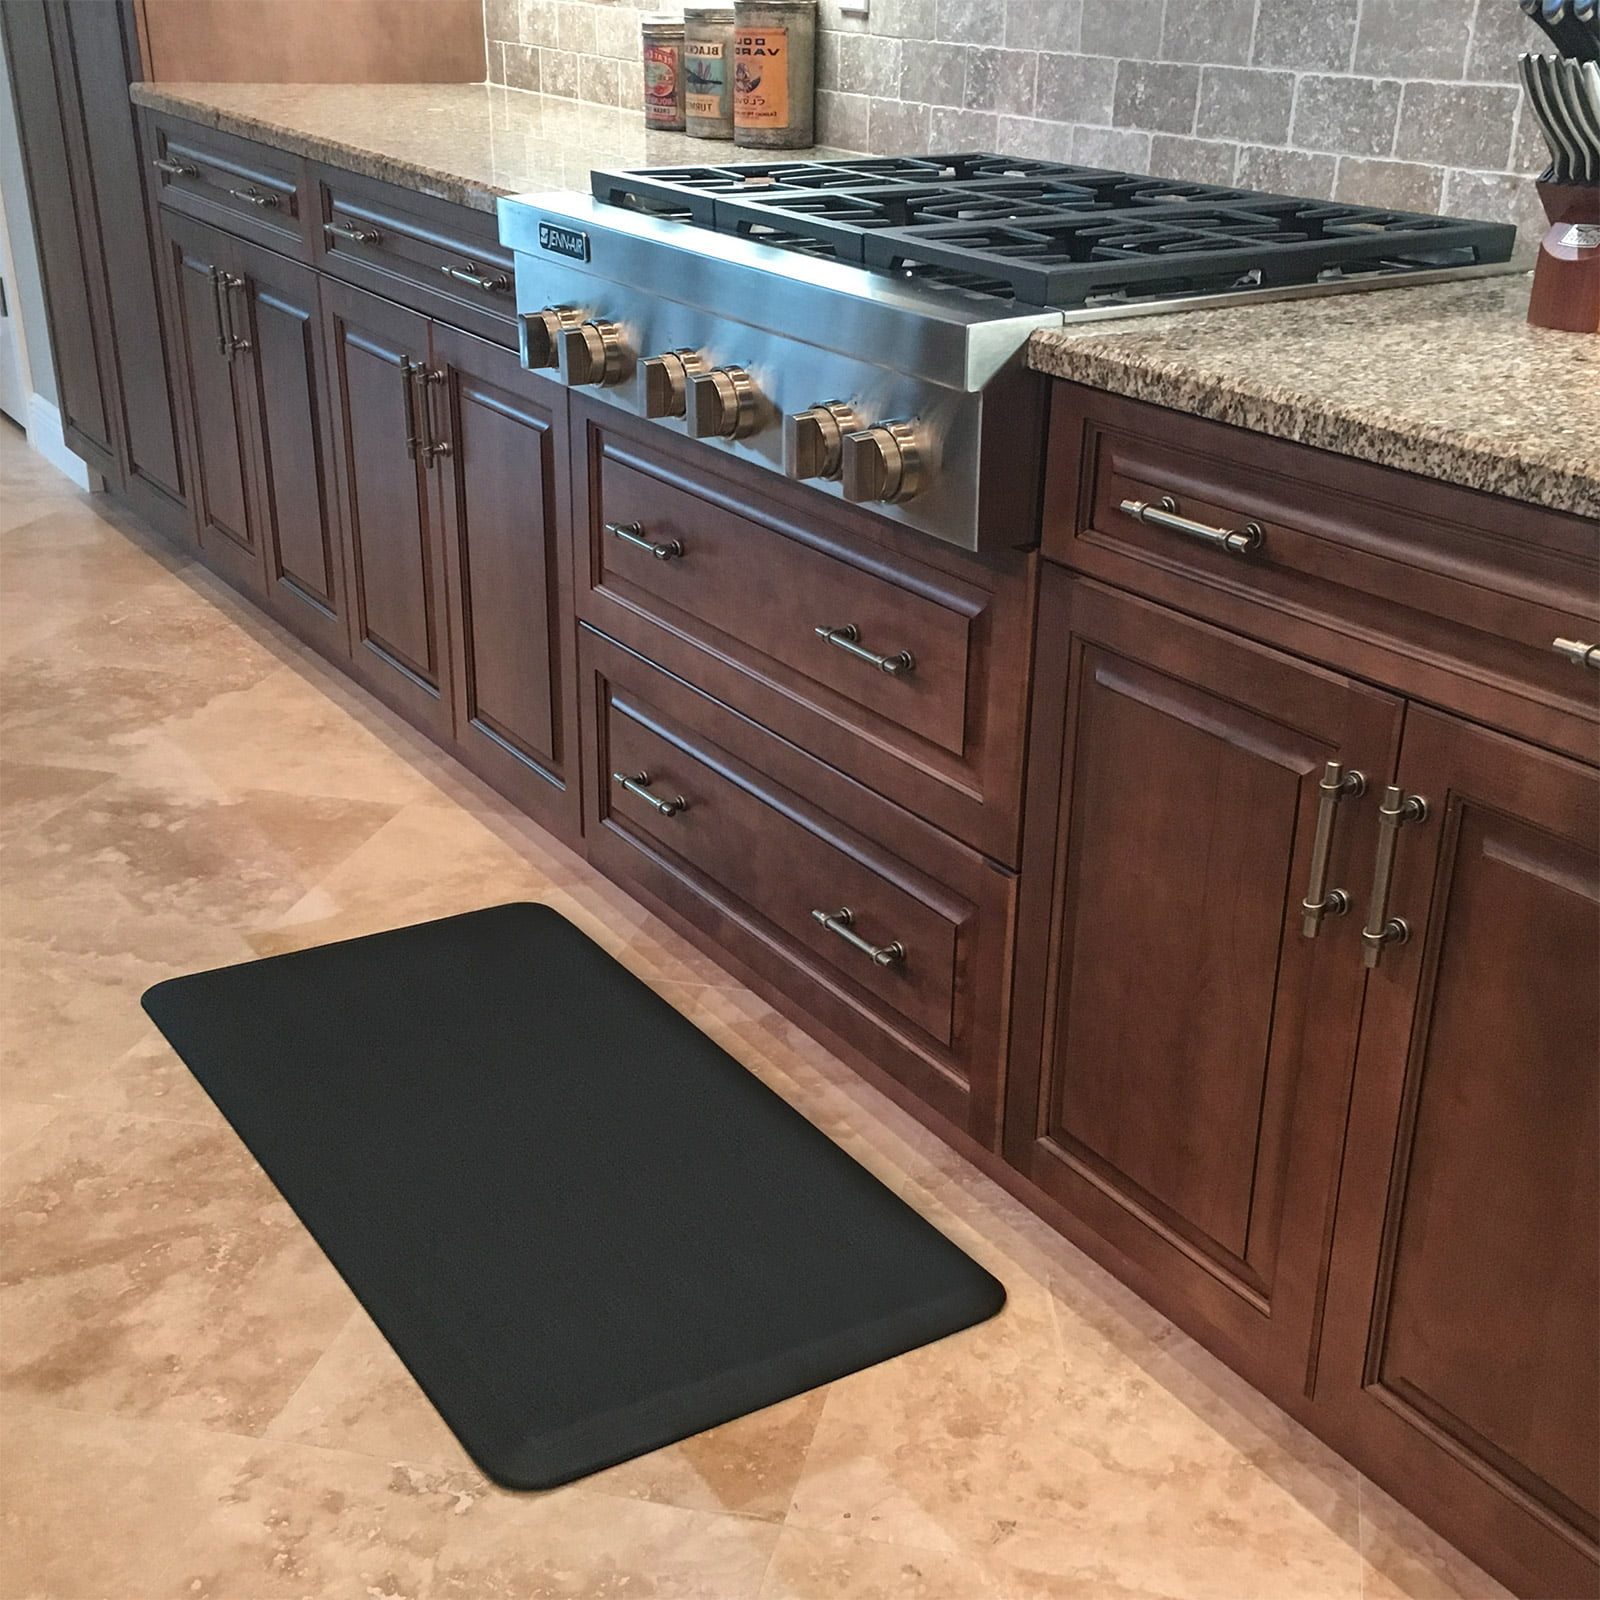 Anti Fatigue Kitchen Mat, Standing Desk Mats, ¾u201d Commercial Grade Comfort  (Black)   Multiple Sizes Available   Walmart.com